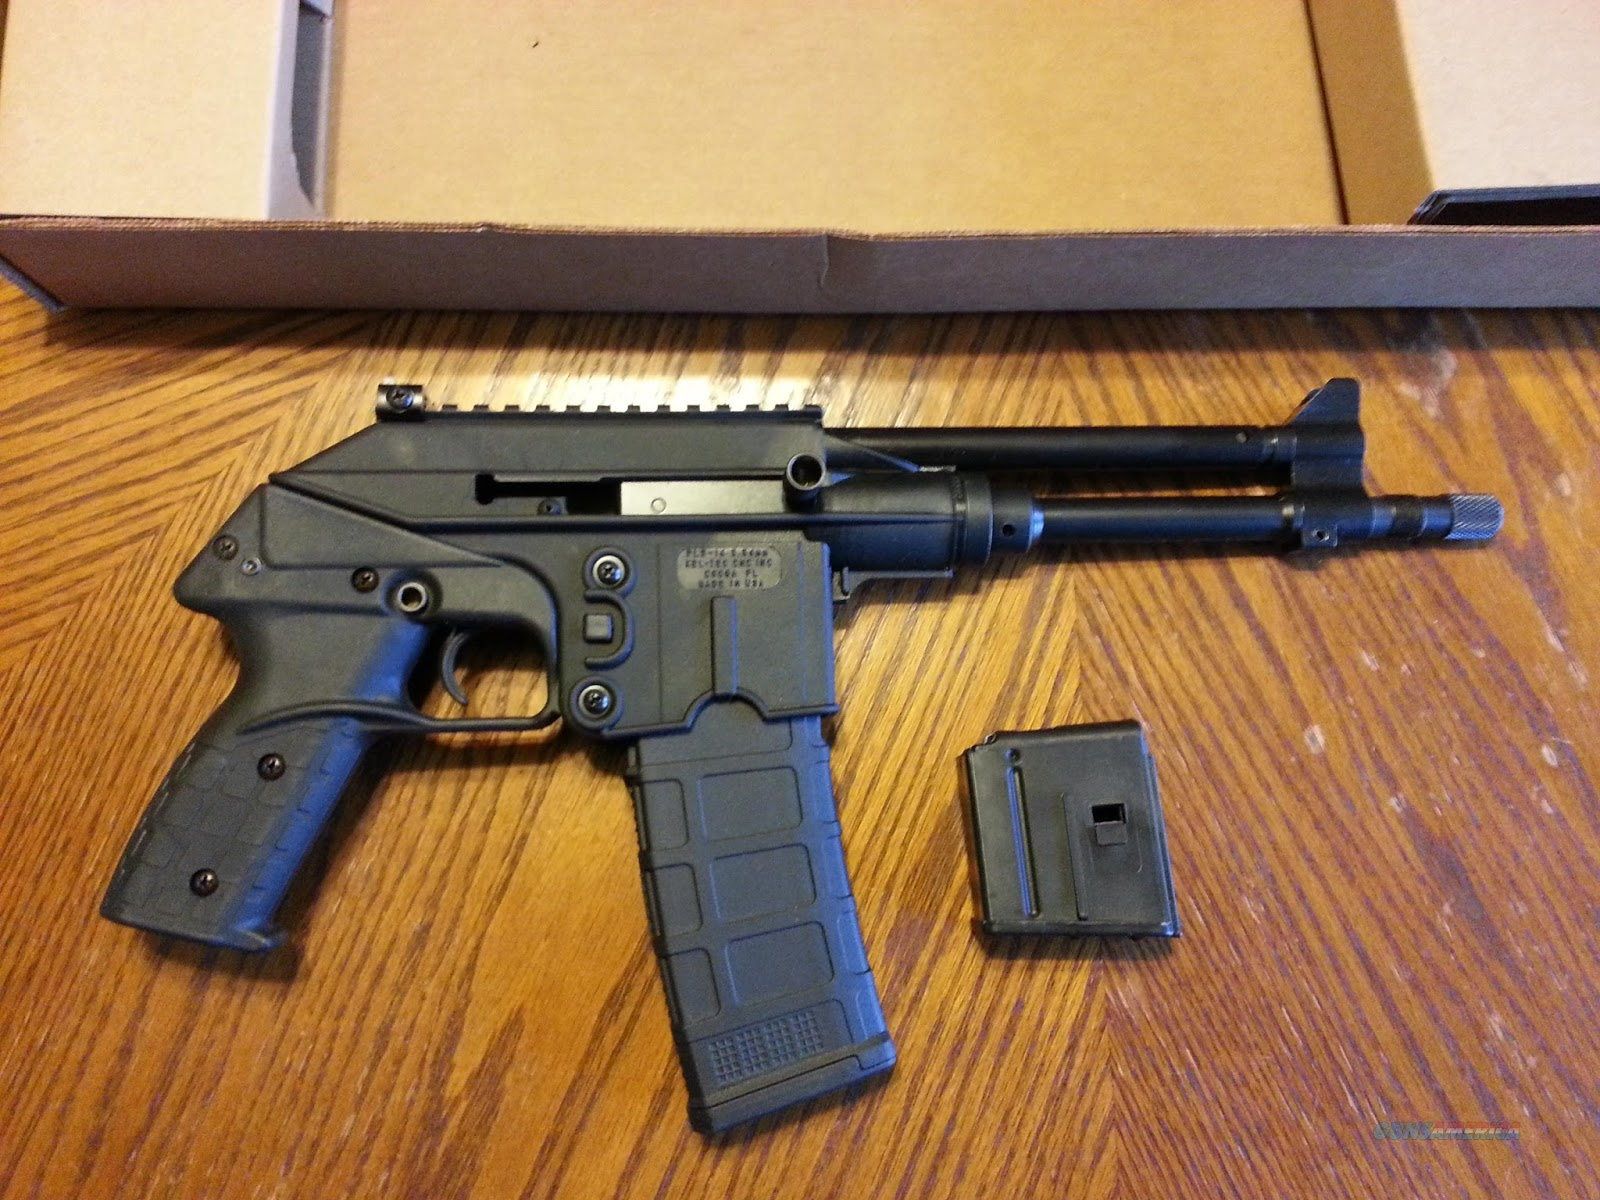 Gunversation: What other guns are like the Draco AK-47 since